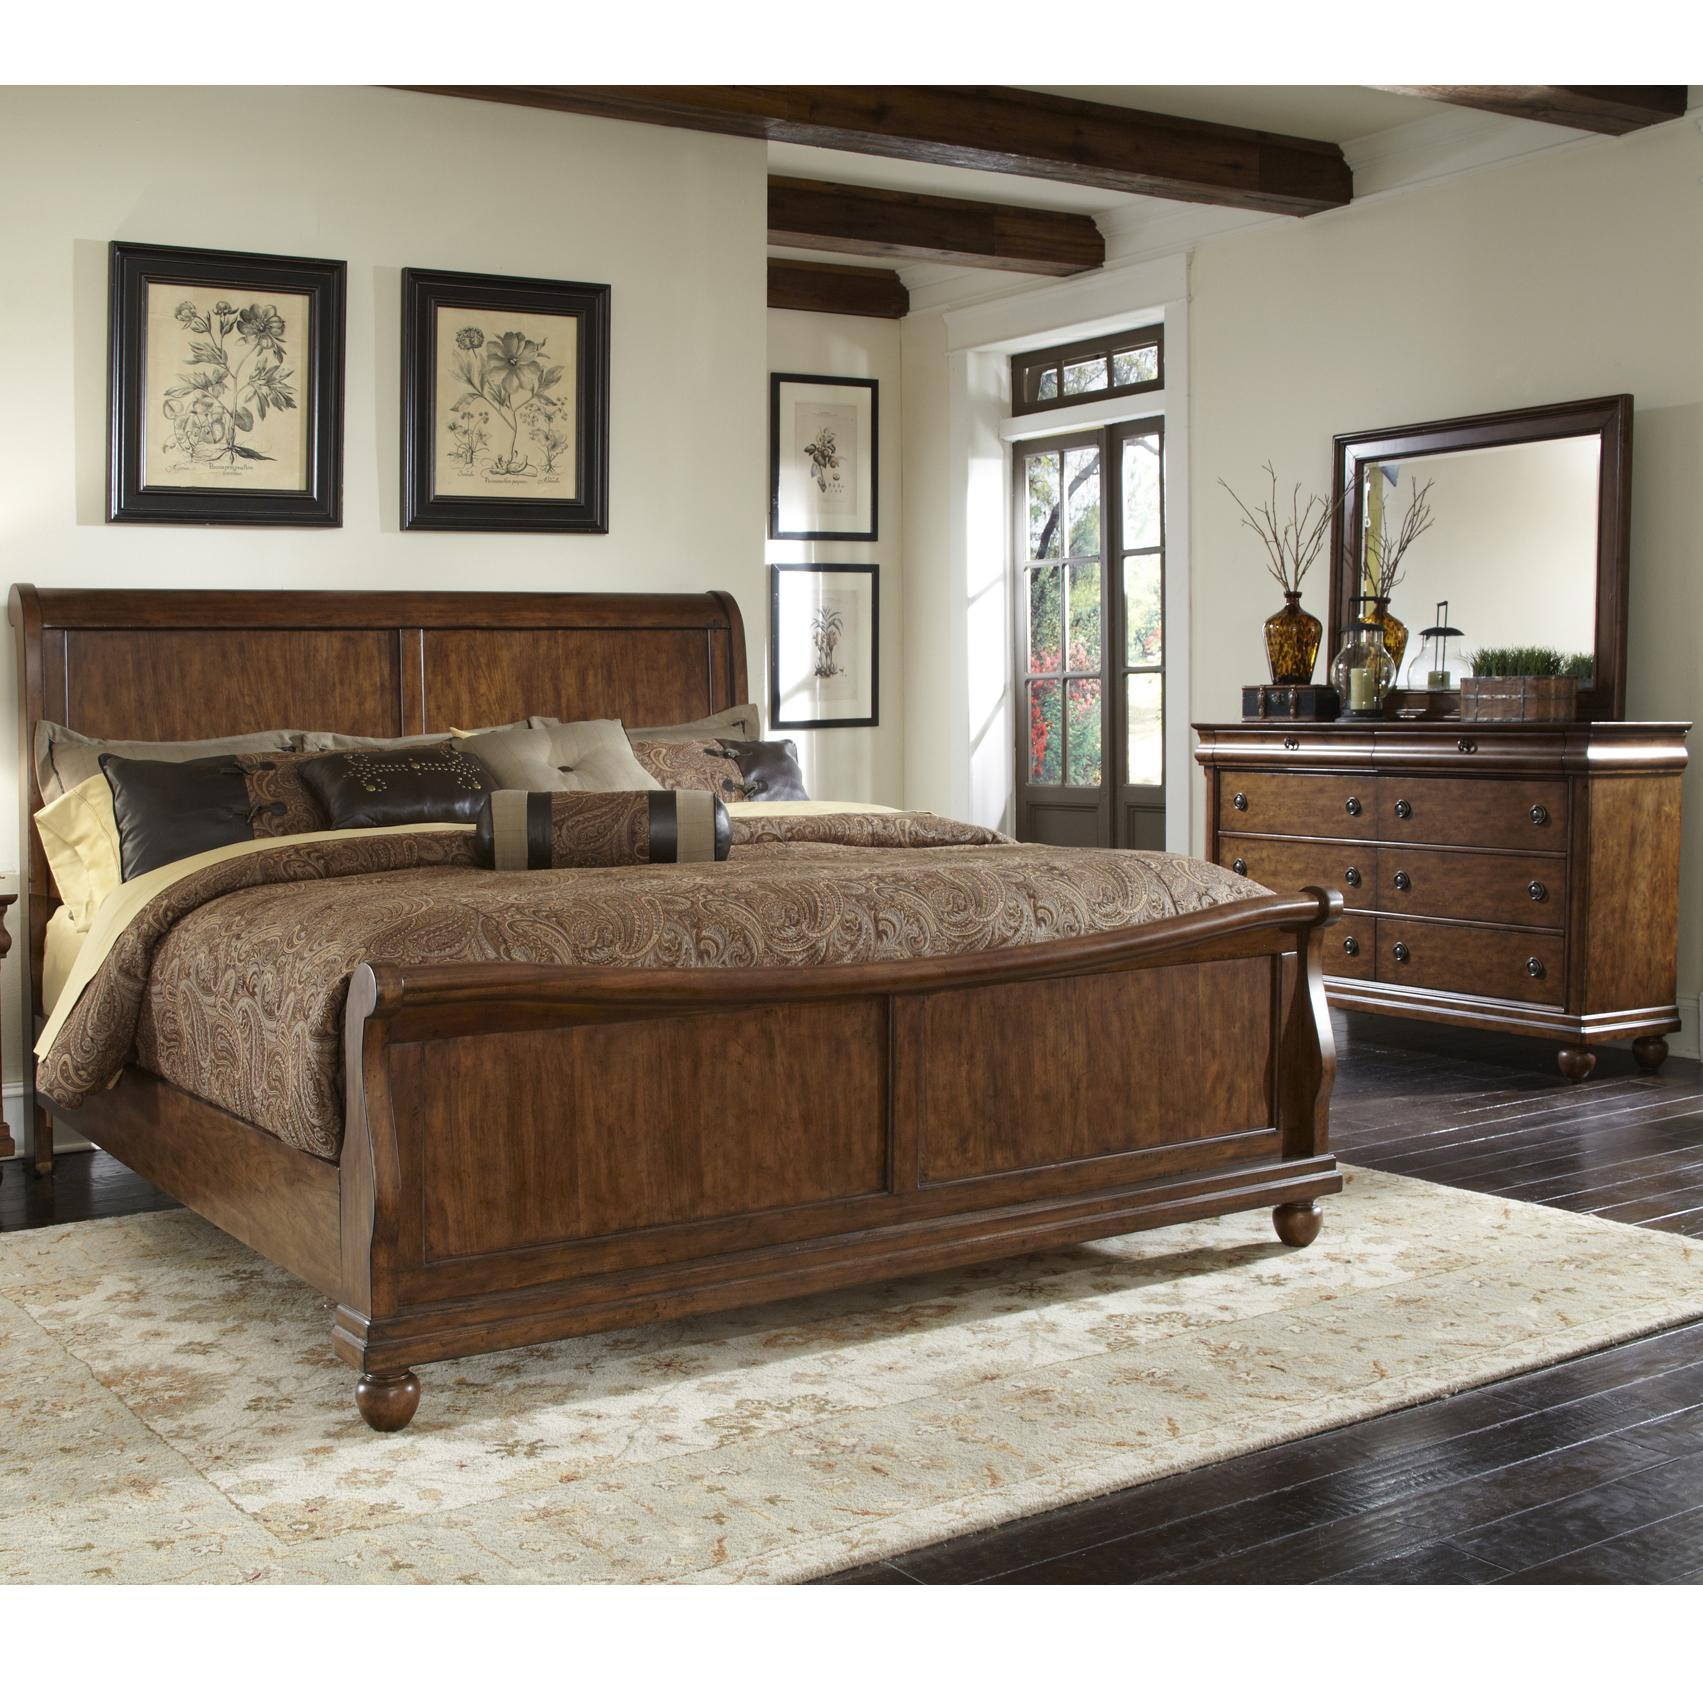 Liberty Furniture Rustic Traditions Queen Bedroom Group 1 - Hudsonu0026#39;s Furniture - Bedroom Groups